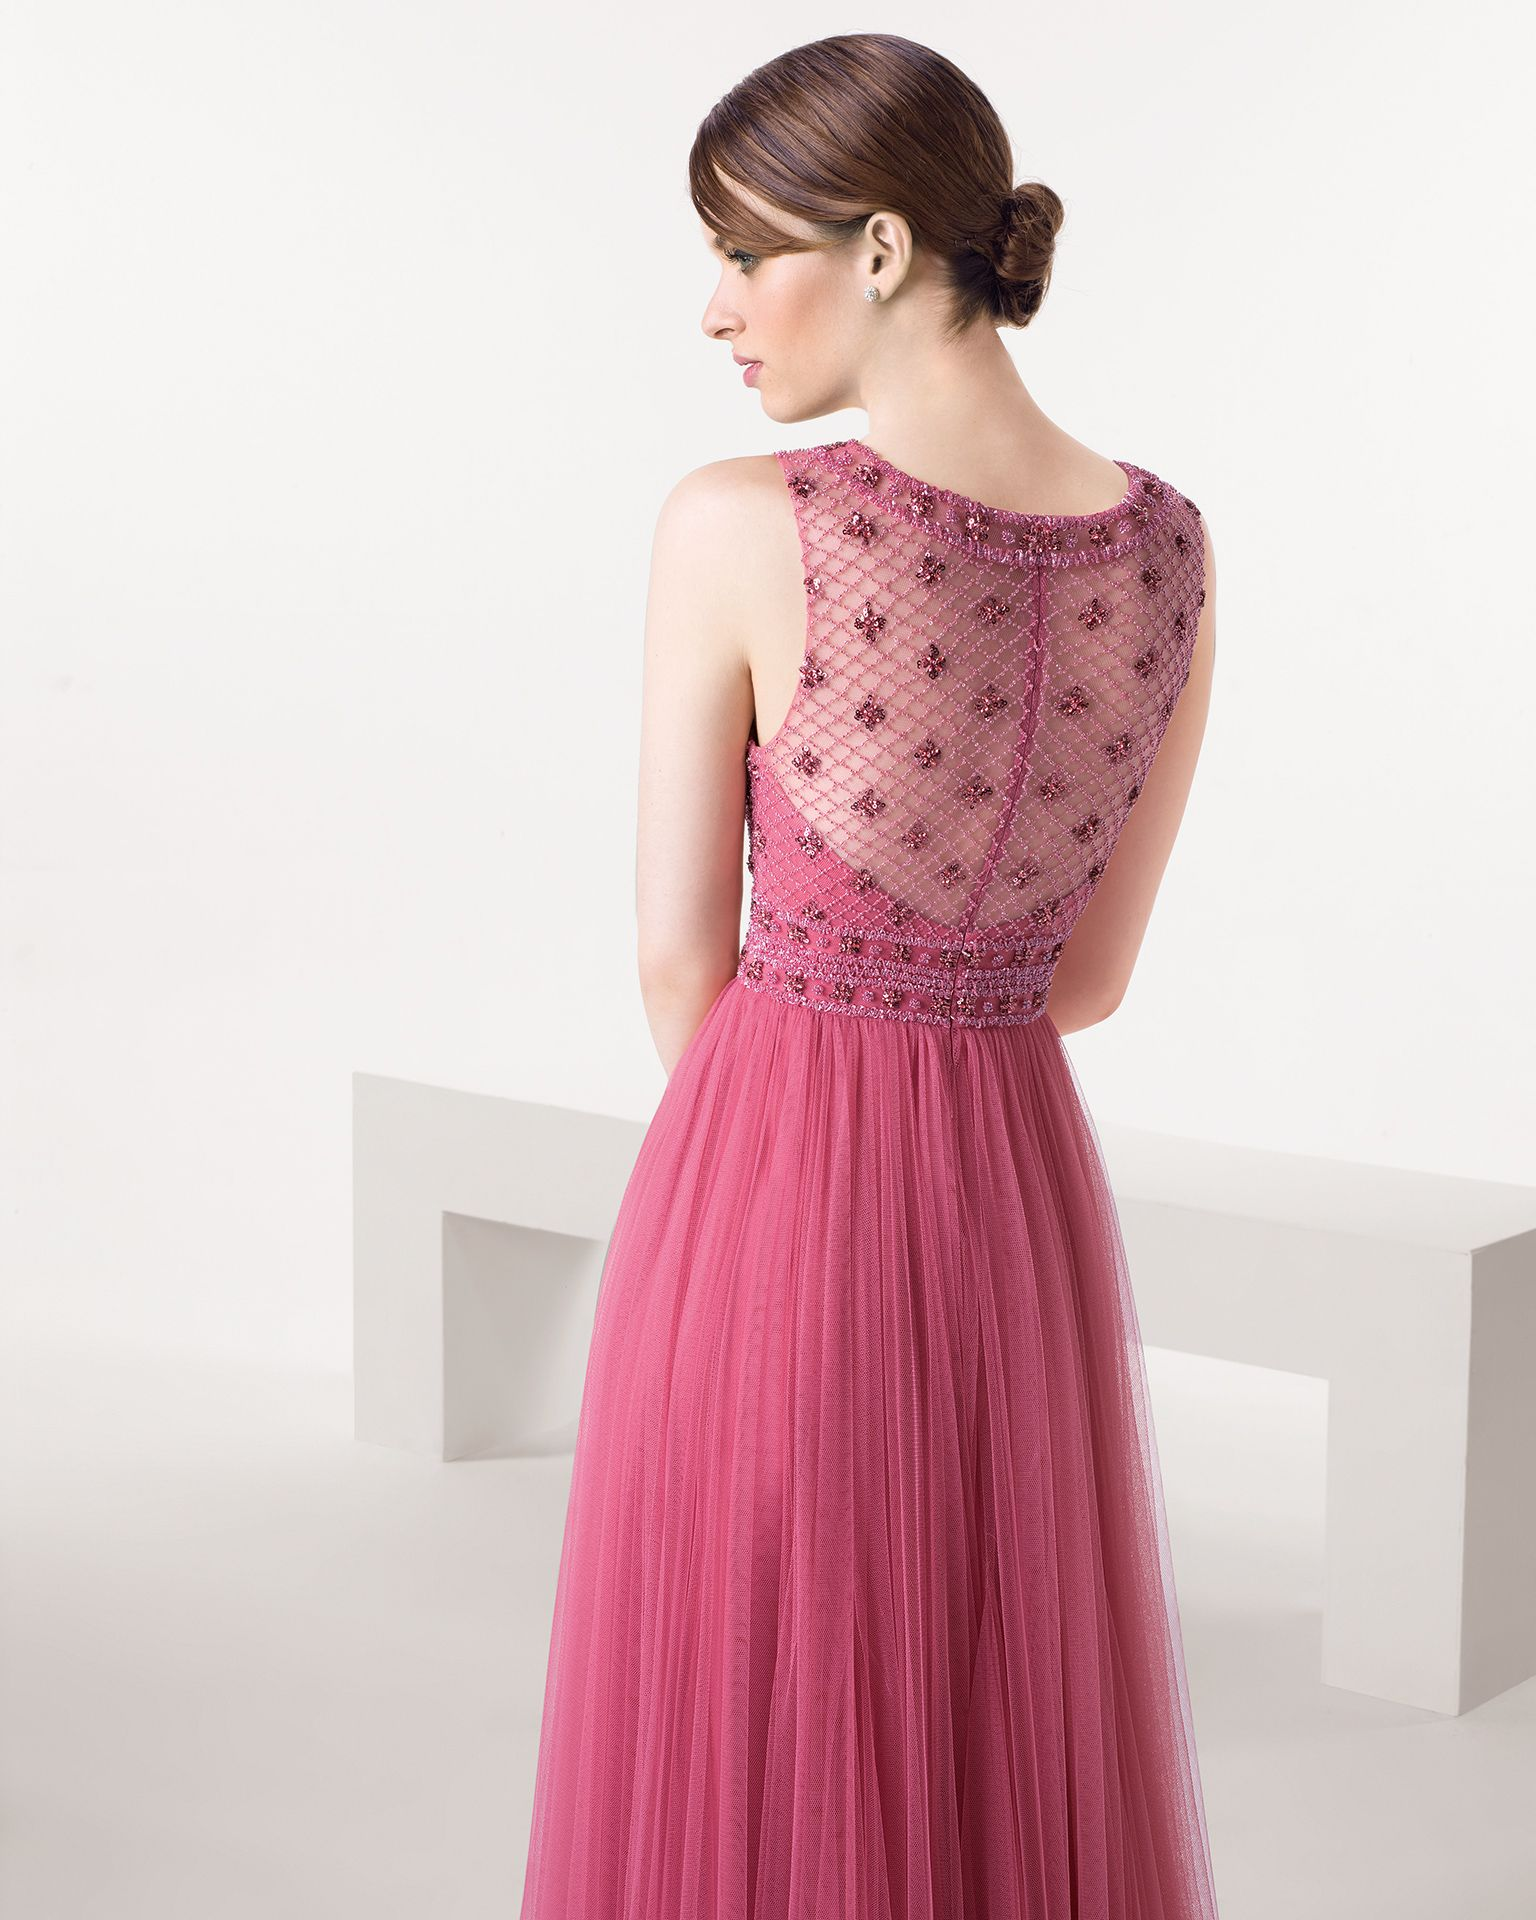 Vestido de fiesta color fucsia | COCKTAIL DRESSES | Pinterest ...